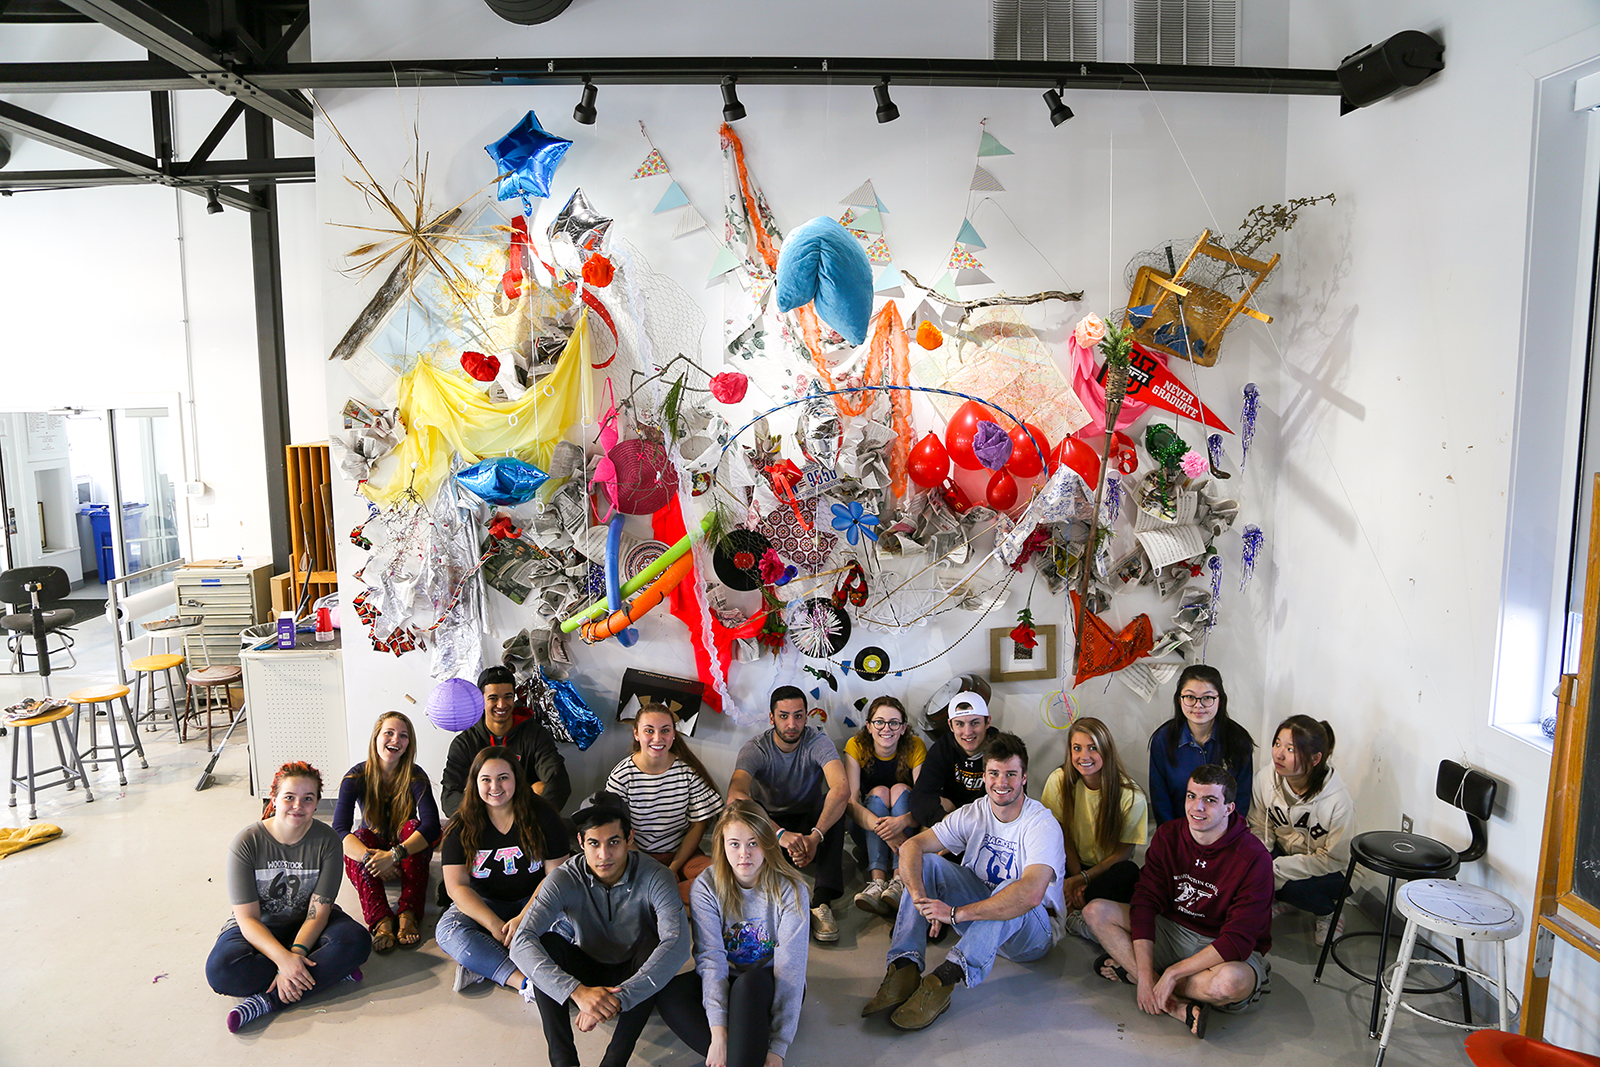 Intermedia_S (sculpture) students with a large-scale collaborative wall installation